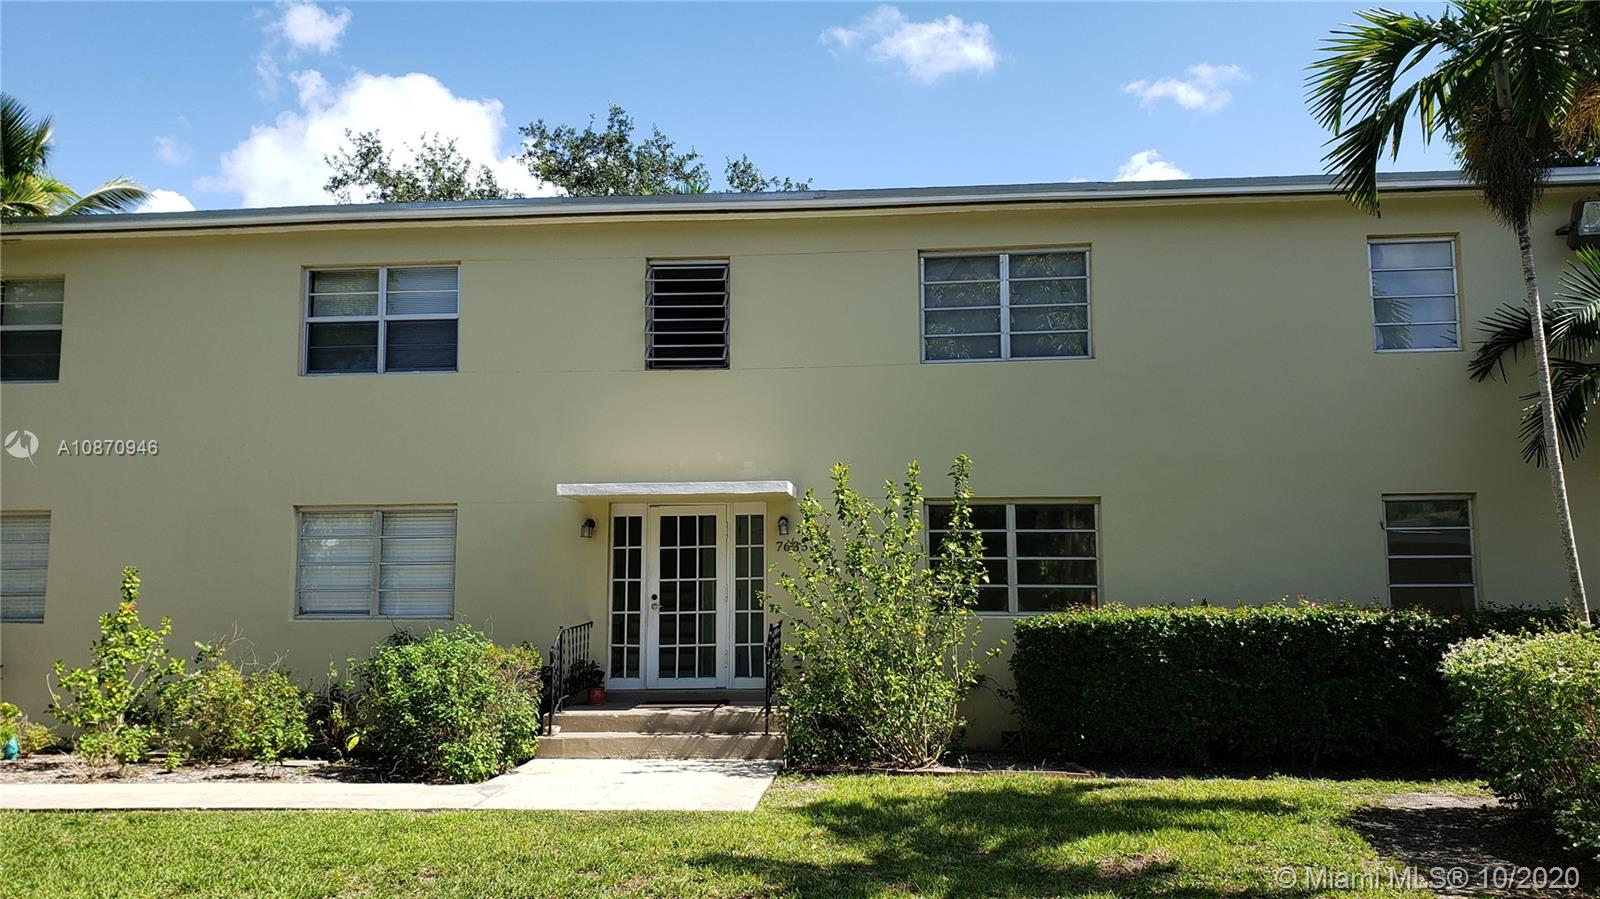 INVESTORS!!! This is a beautiful remodeled and maintained condo. 2 Bedroom/1 Bathroom. Centrally located in the heart of South Miami. Brand new bathroom, nice kitchen, wood floor throughout the unit, washer/dryer inside the unit. Freshly painted. Close to Sunset Place, shopping, restaurants and University of Miami. Low condominium Association fee. Community offers plenty of parking, swimming pool and beautiful landscaping. Unit is tenant occupied, please call/text listing agent for showing instructions. Great Neighborhood and great opportunity!!! Must see!!!